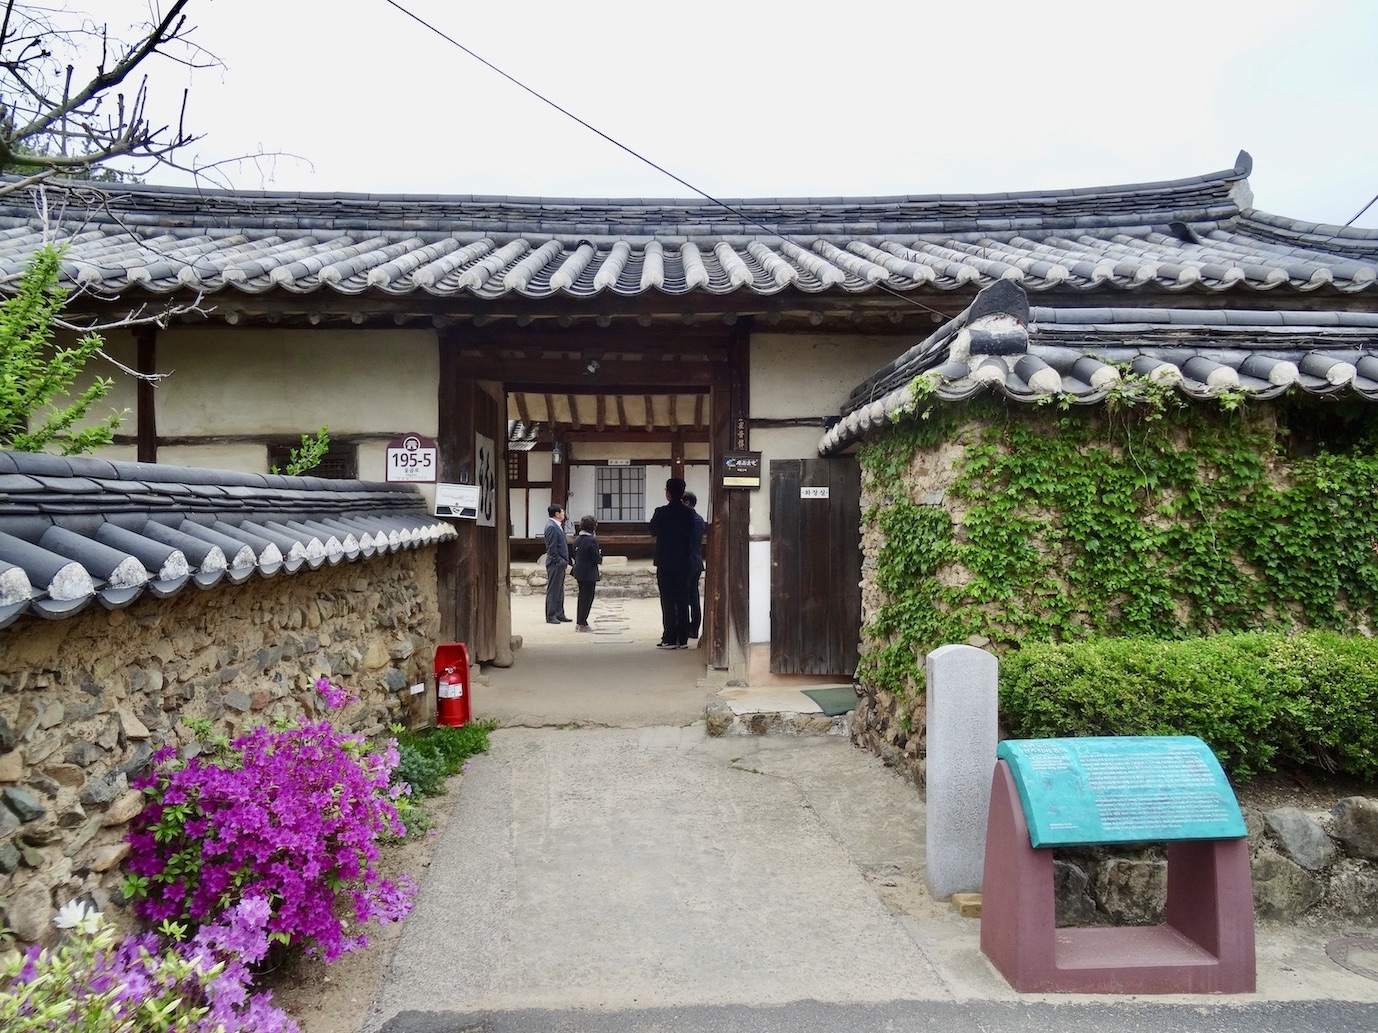 Oldest house in Daegu Otgol Village.